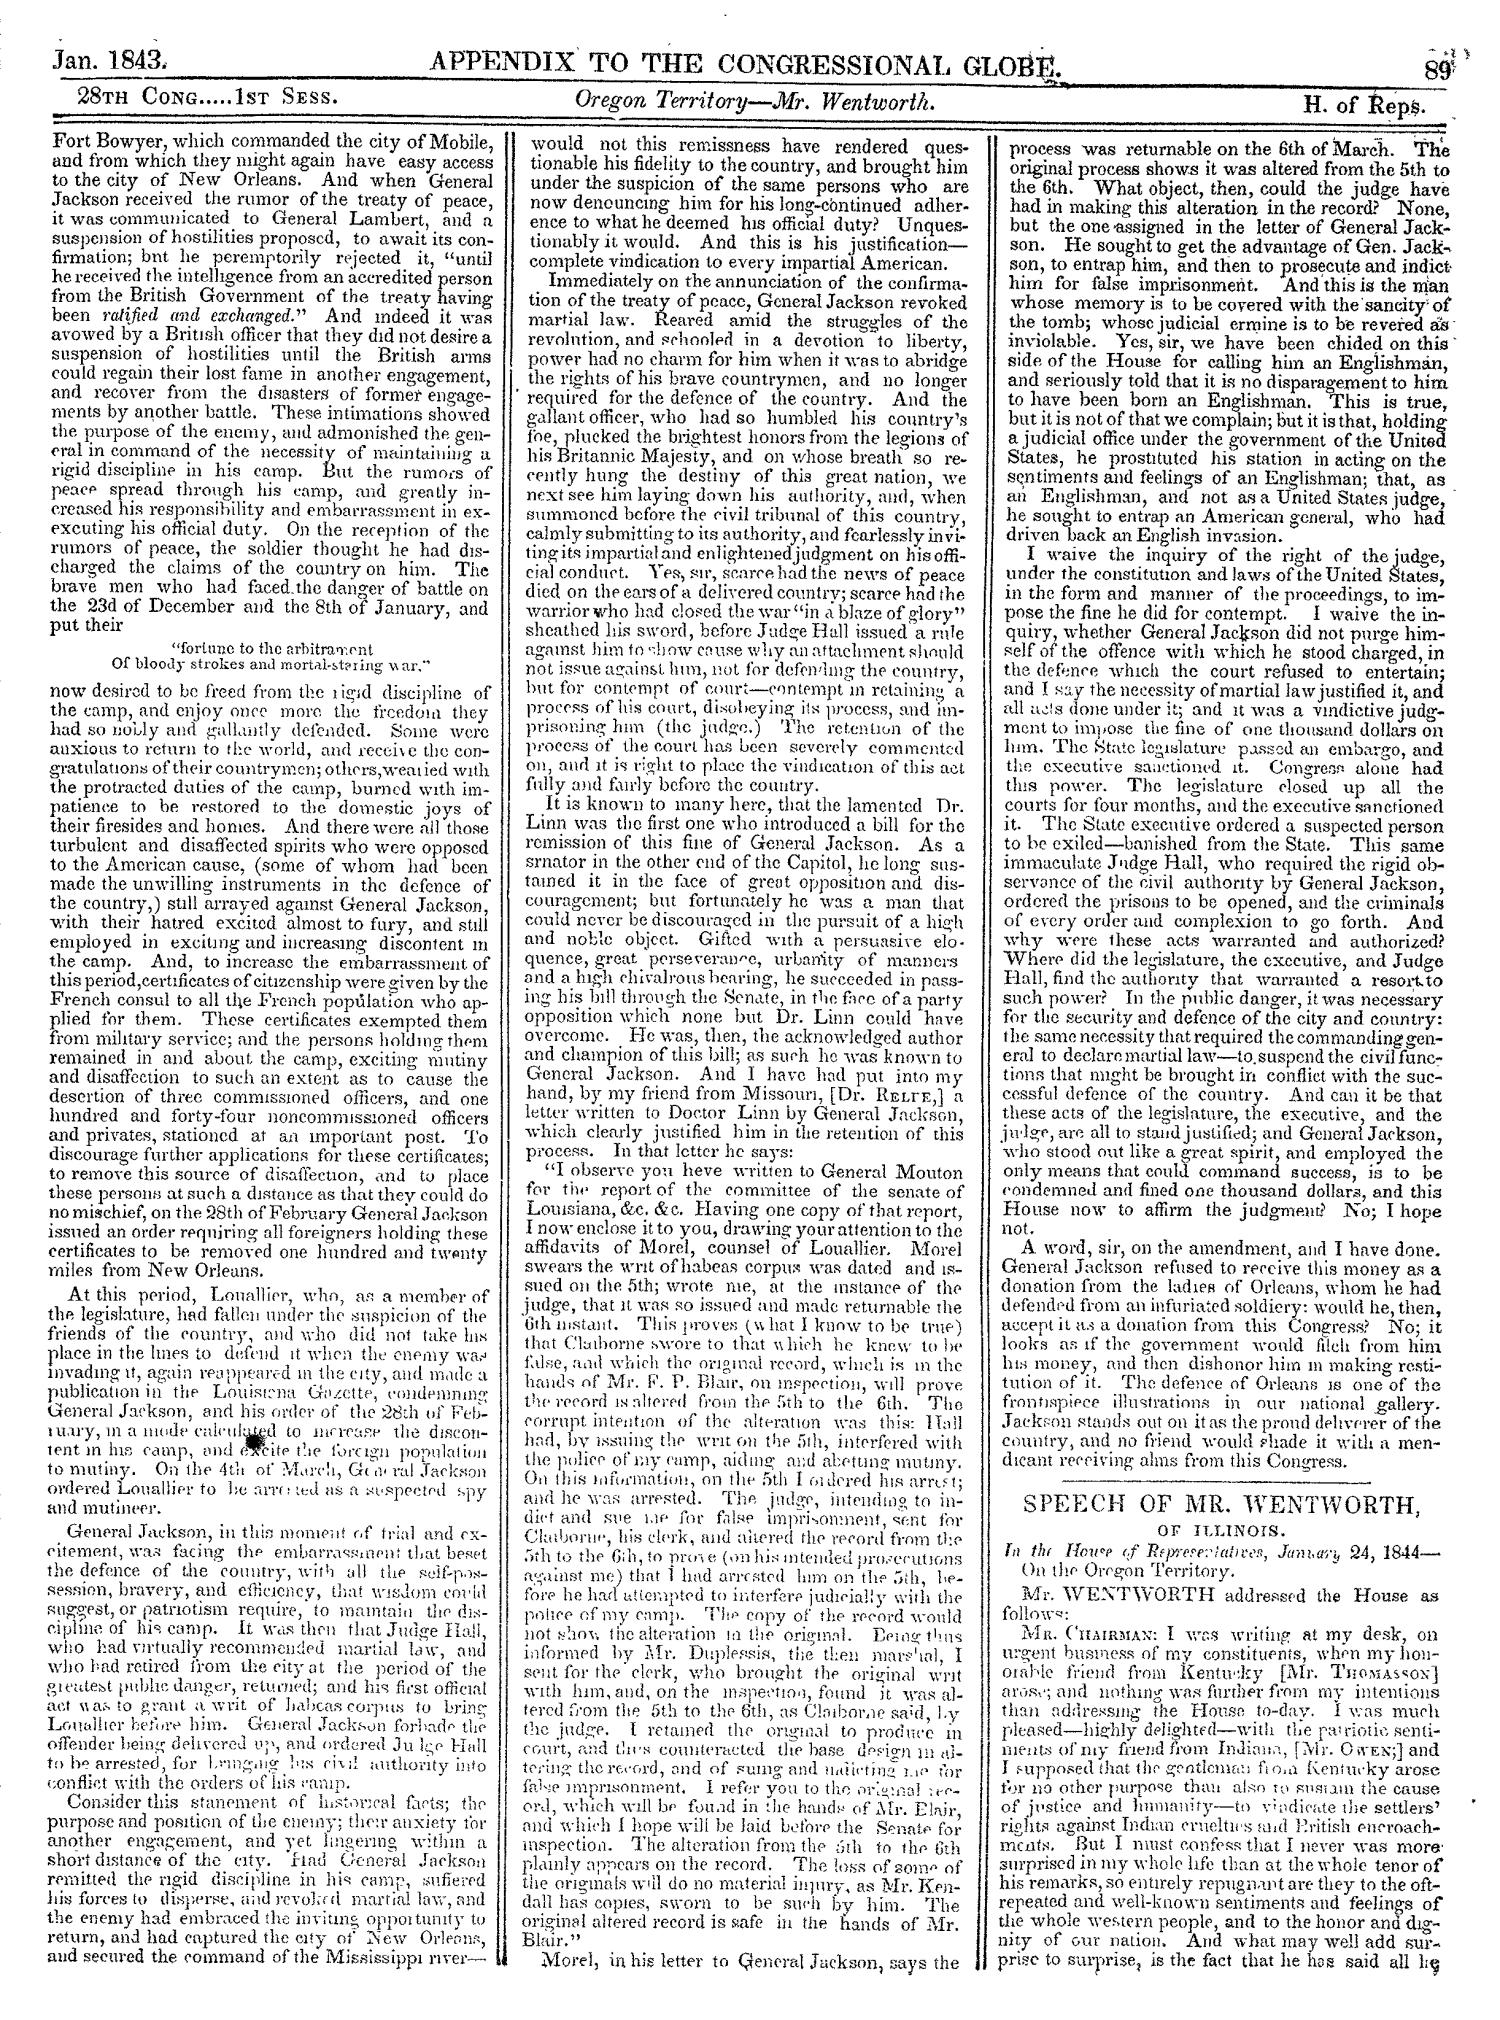 The Congressional Globe, Volume 13, Part 2: Twenty-Eighth Congress, First Session                                                                                                      89